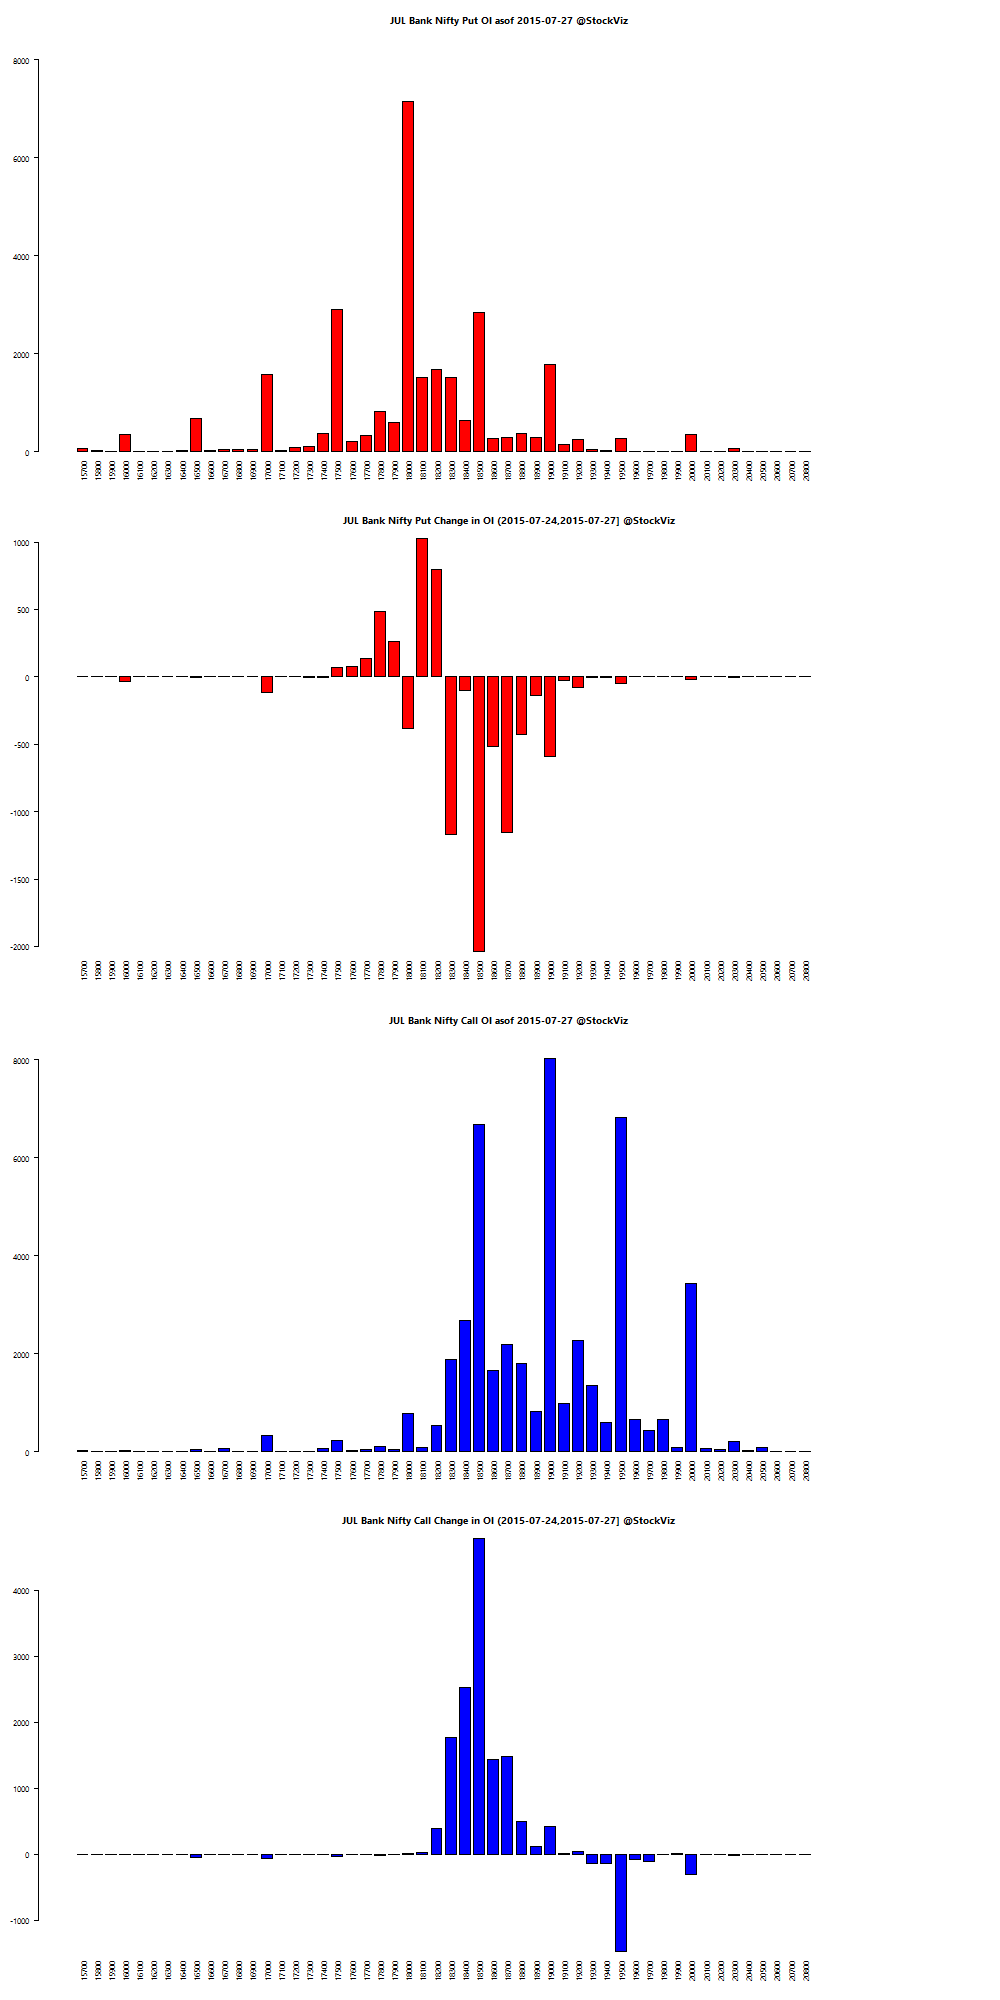 JUL BANKNIFTY OI chart